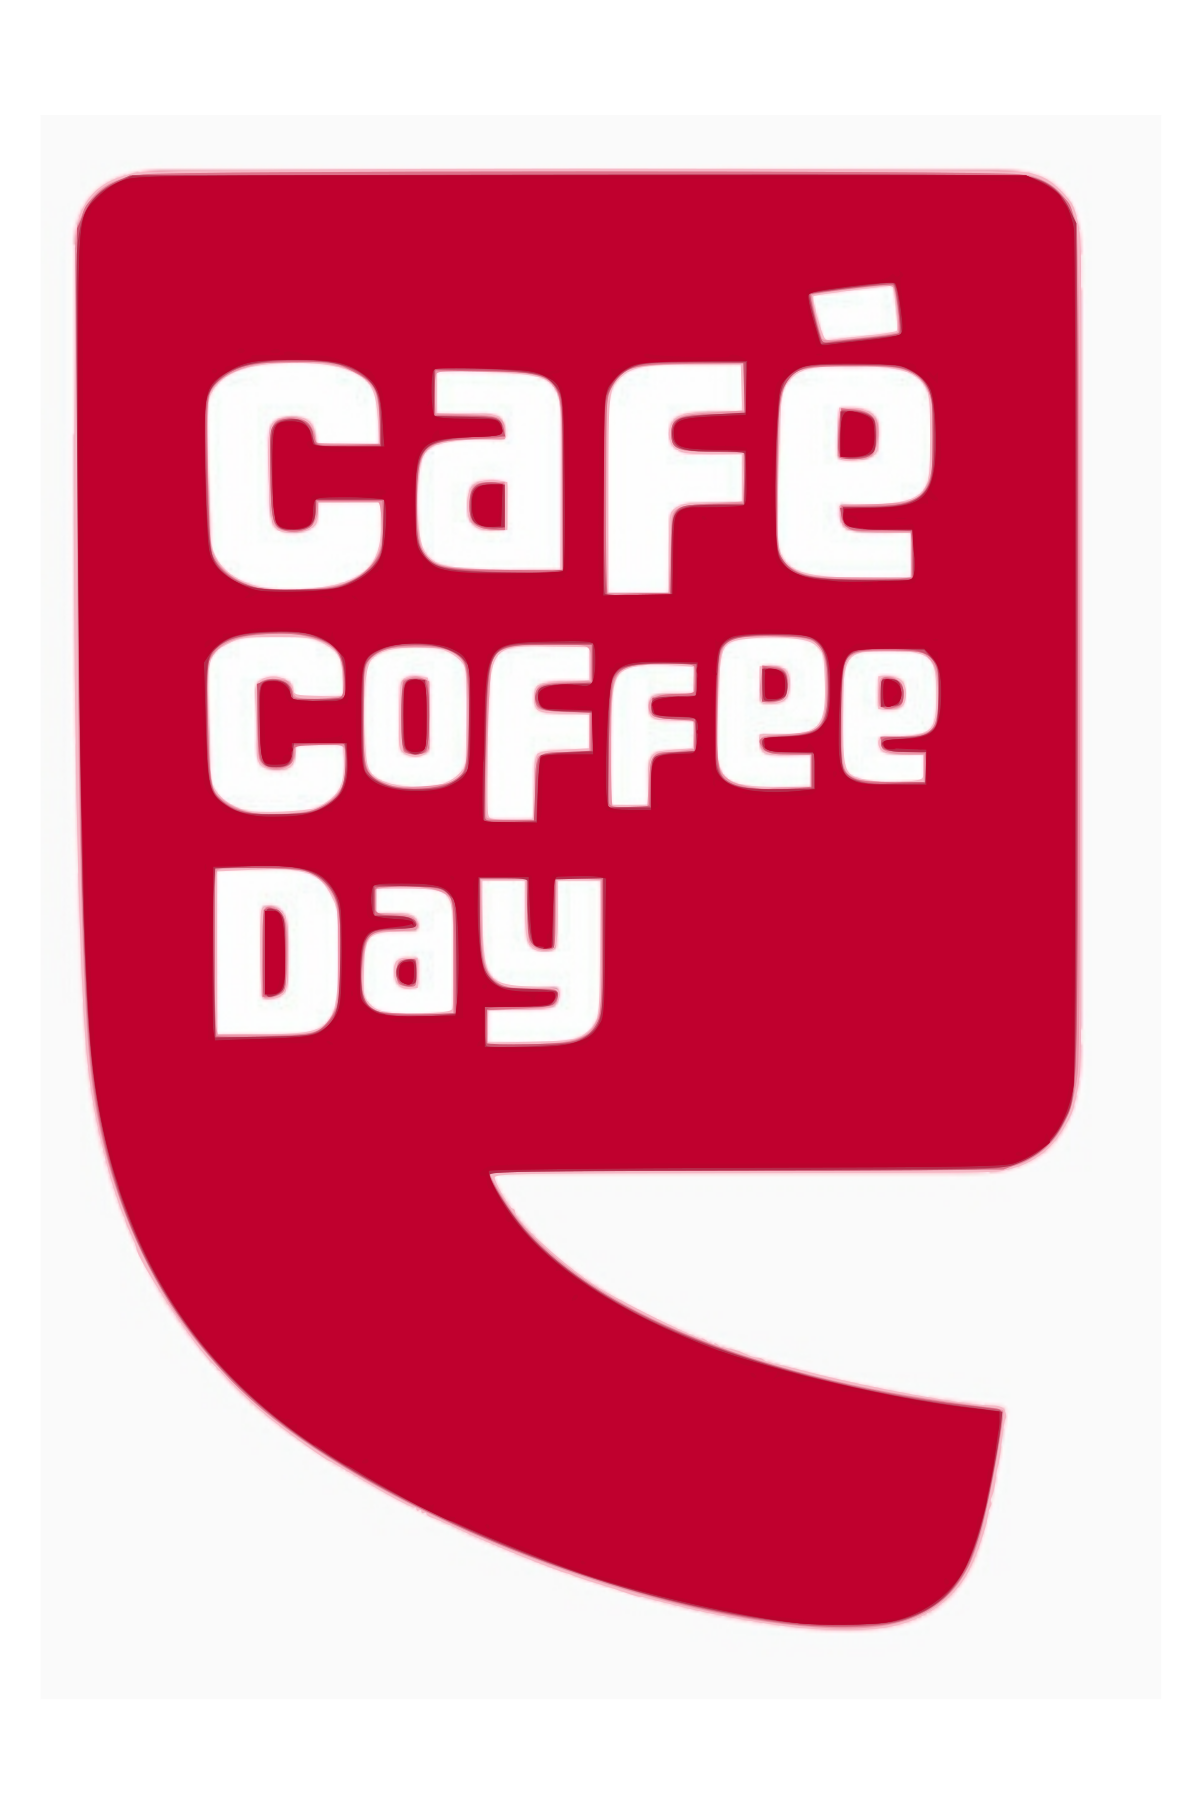 Cafe Coffee Day - MG Road - Bangalore Image